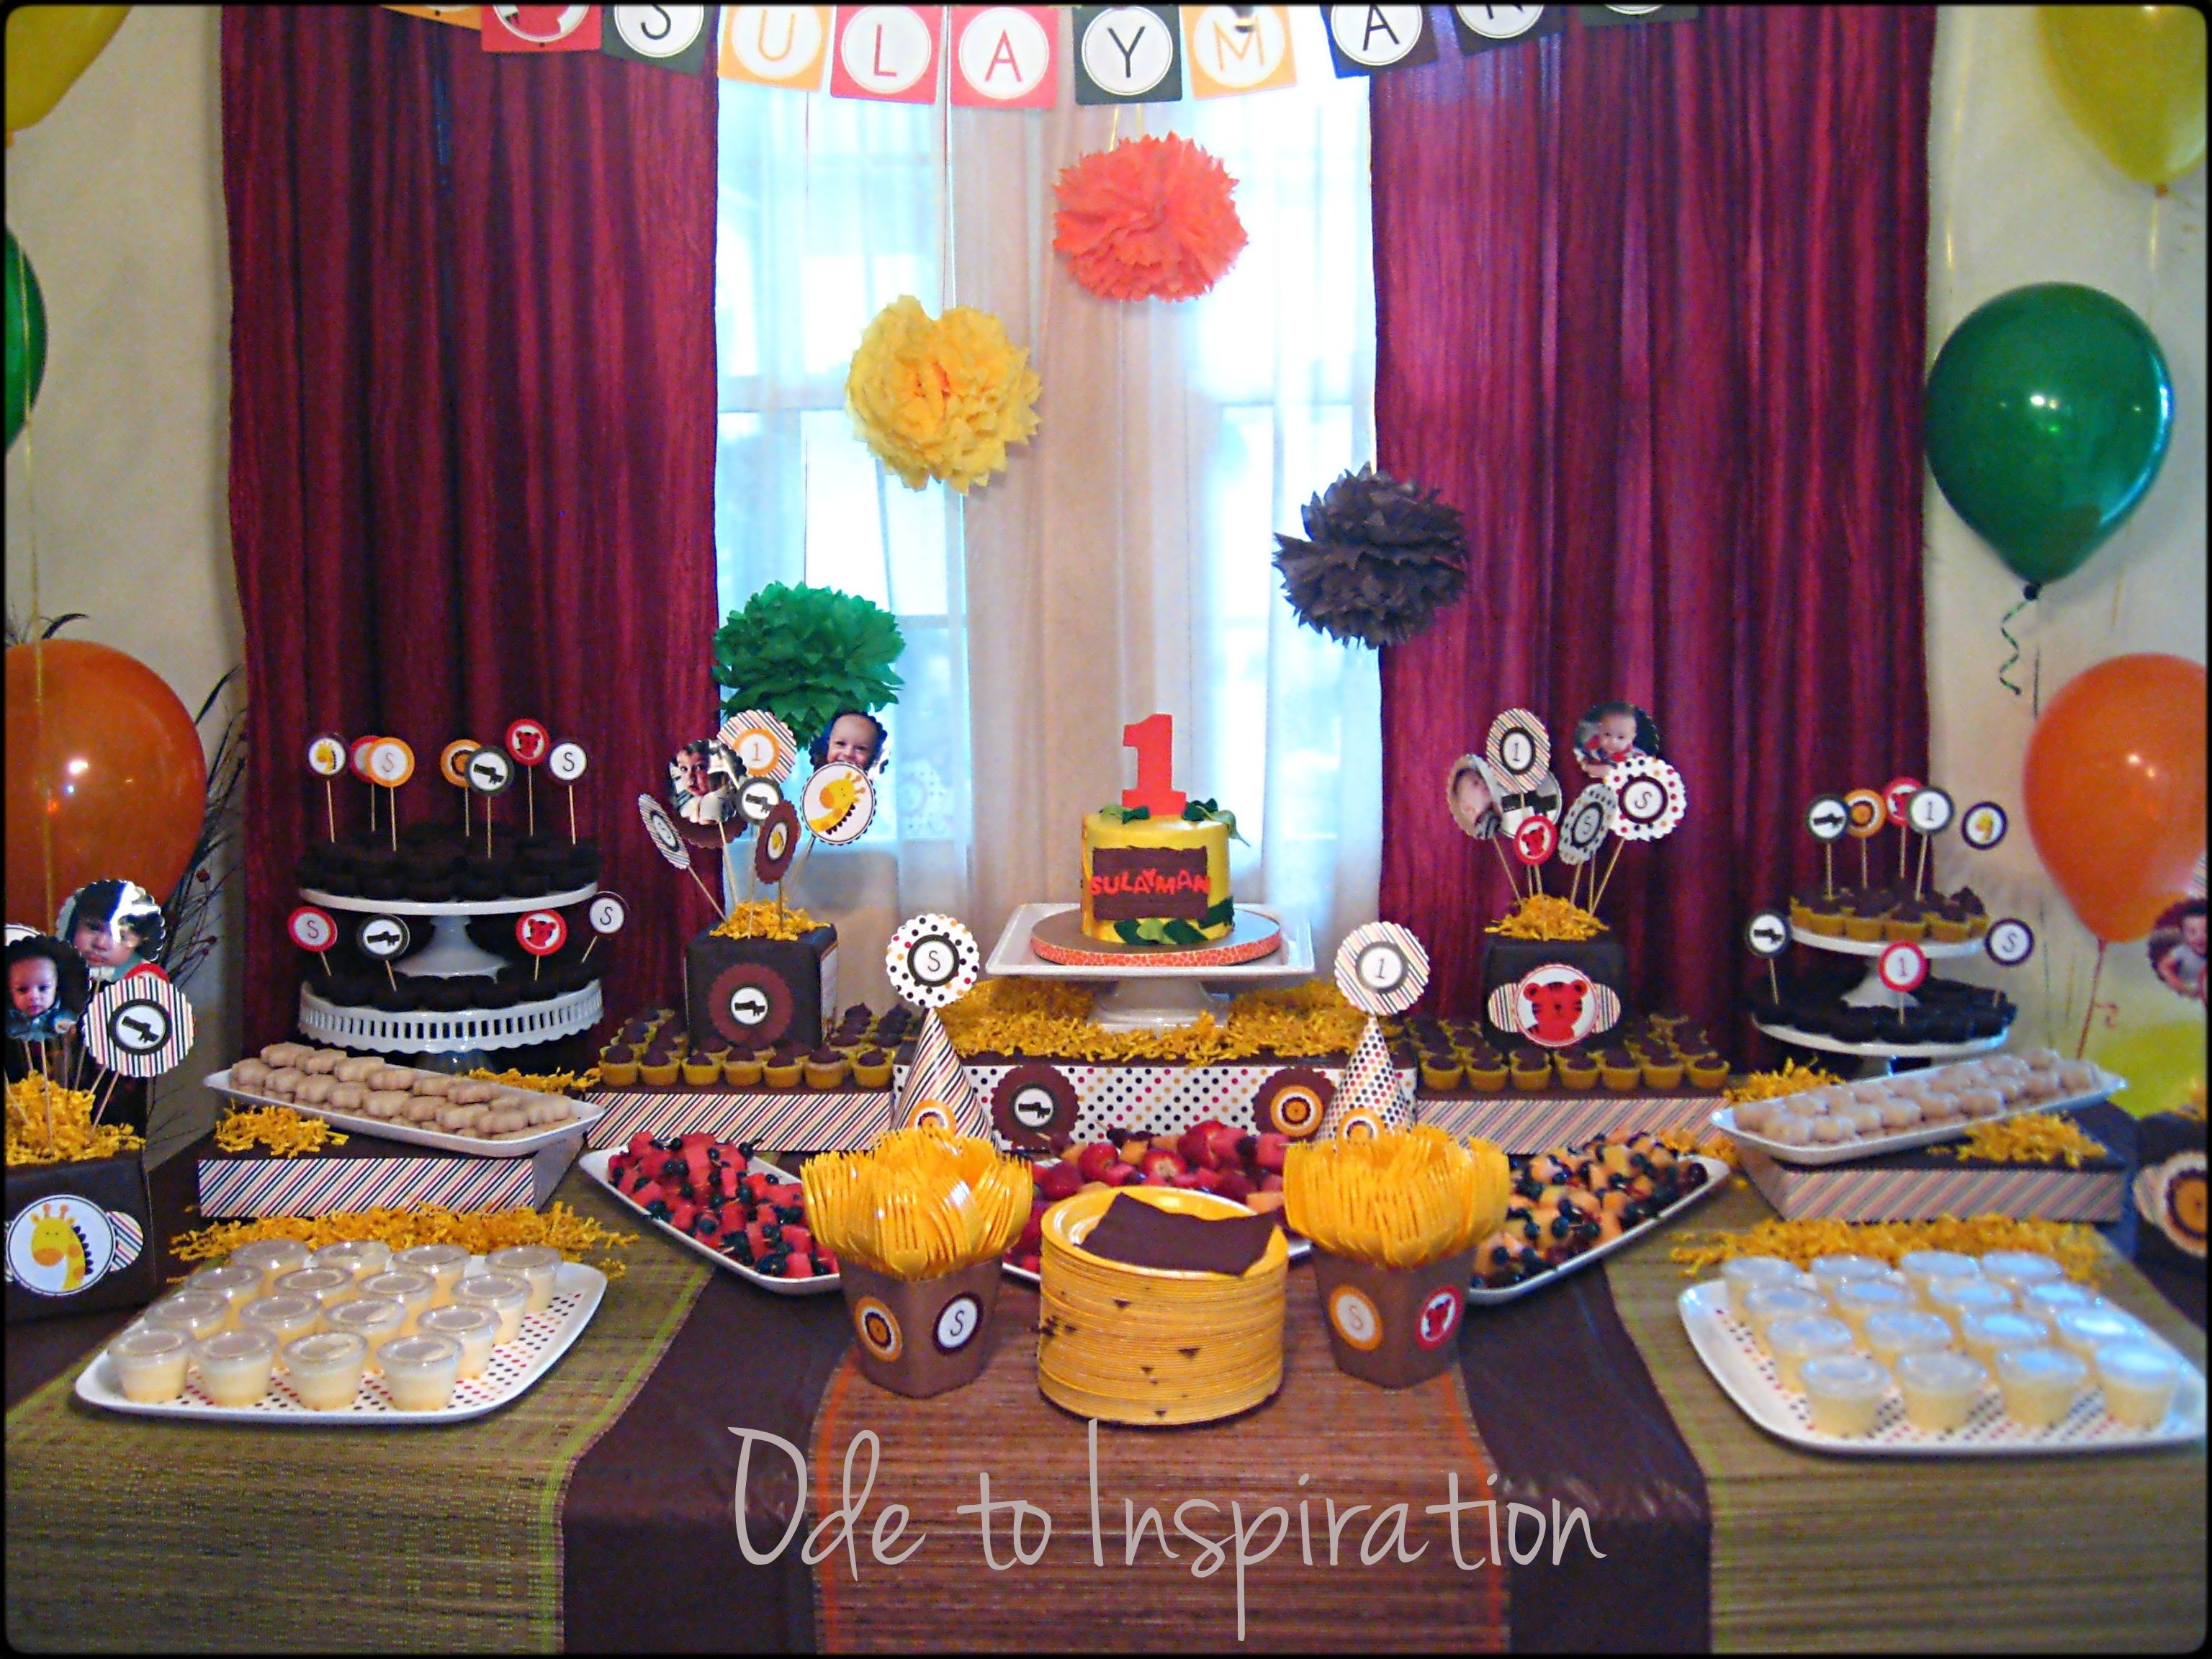 10 Best Birthday Party Decorations Ideas For Adults birthday house party ideas for adults 4 2020